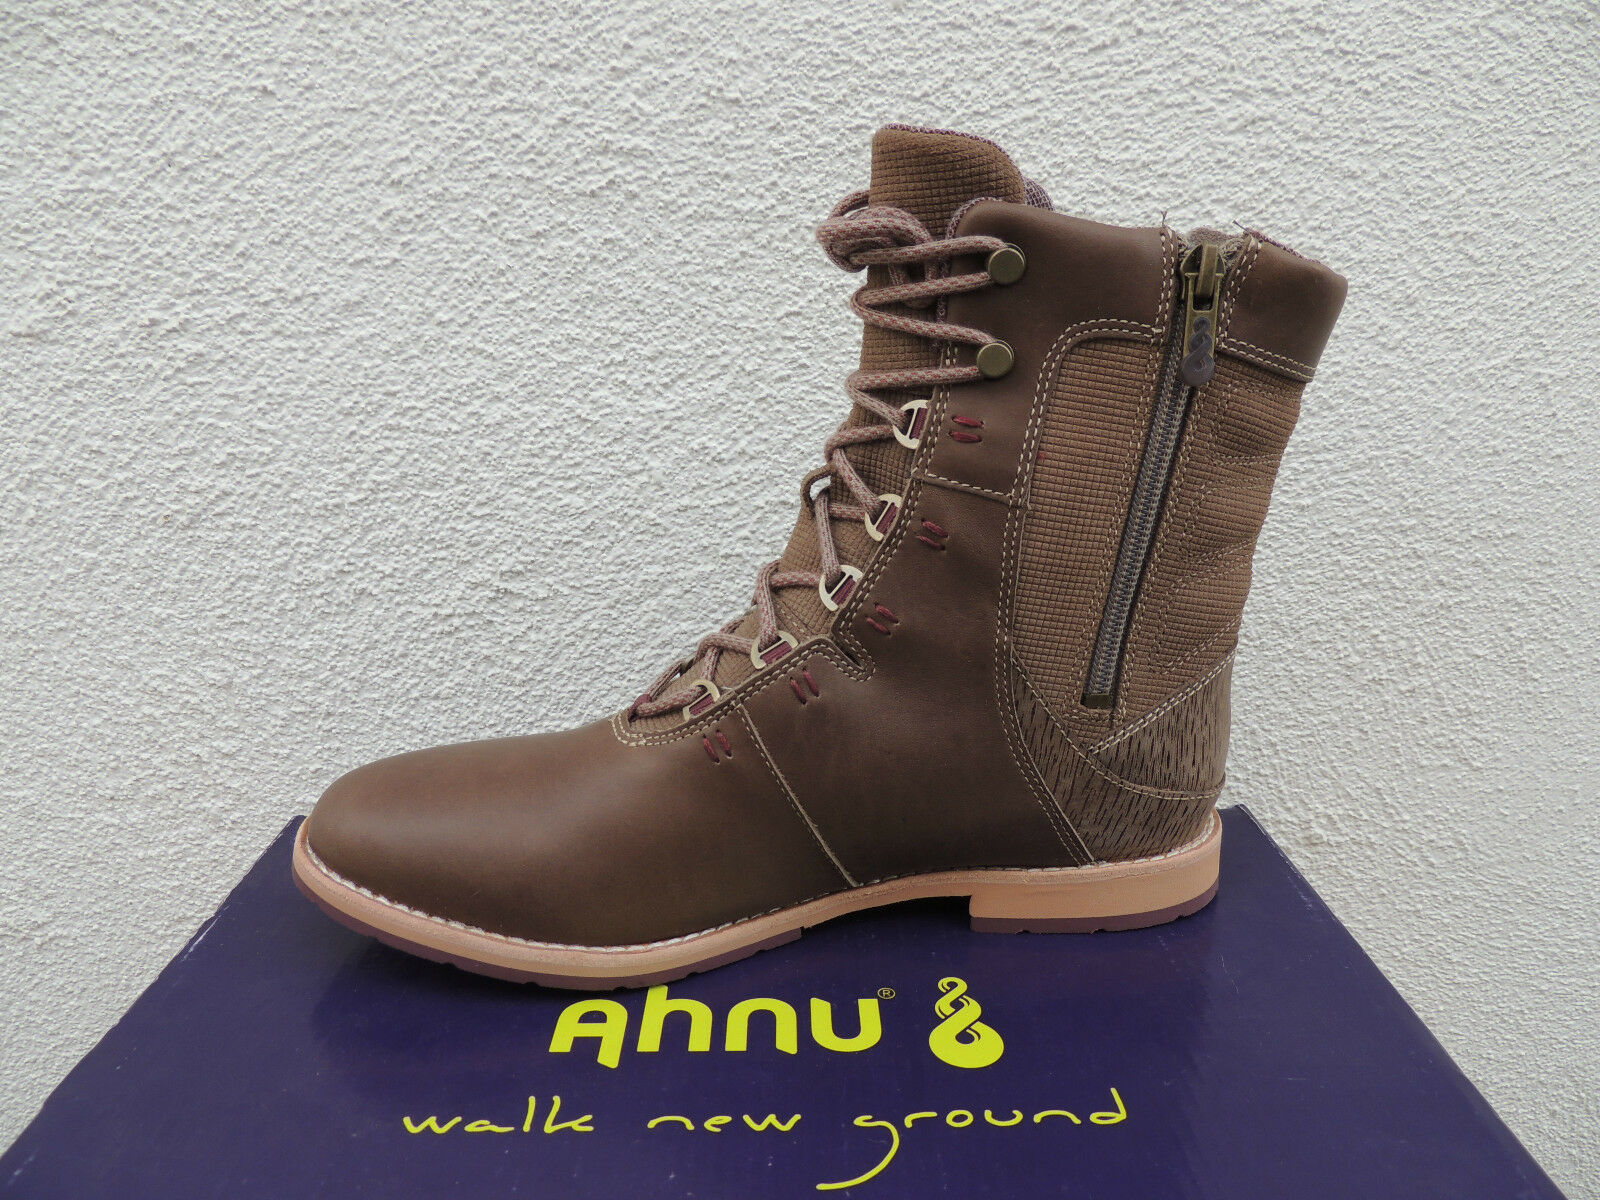 AHNU AHNU AHNU CHENERY TIMBER WOLF WATER-PROOF LEATHER ANKLE BOOTS, US 9/ EUR 40 ~NIB a99740